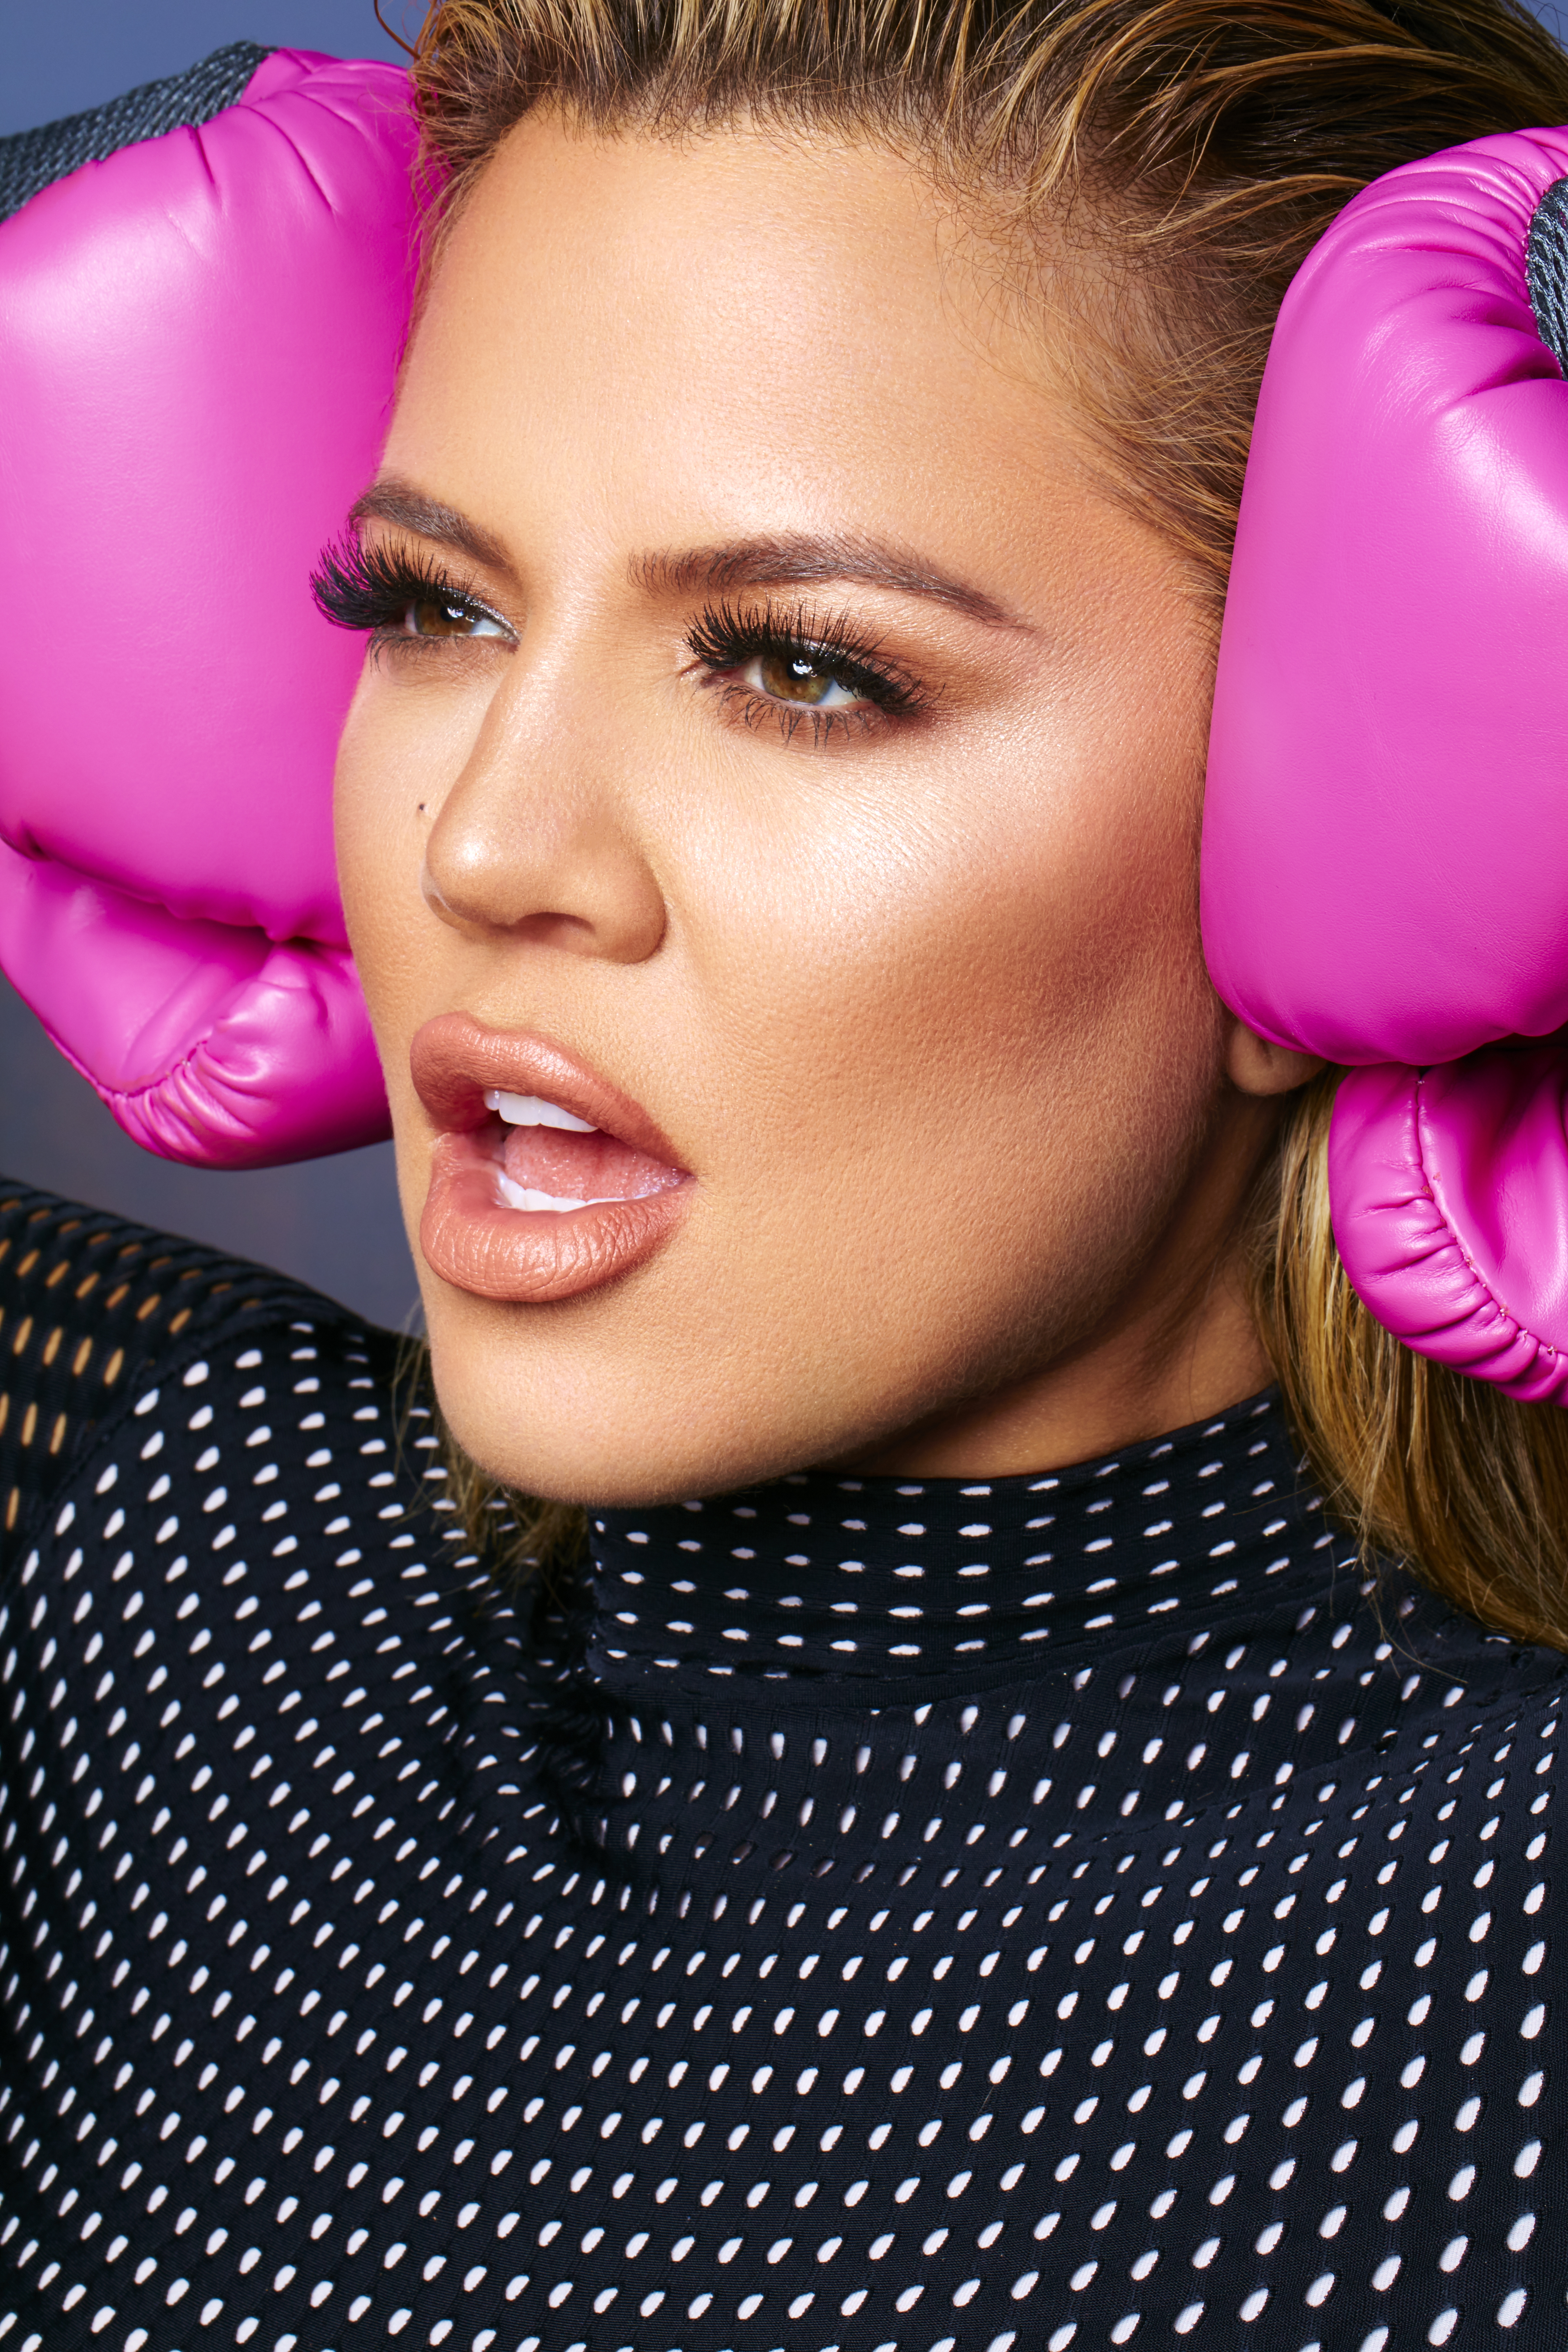 Khloe Kardashian on loving her shape: